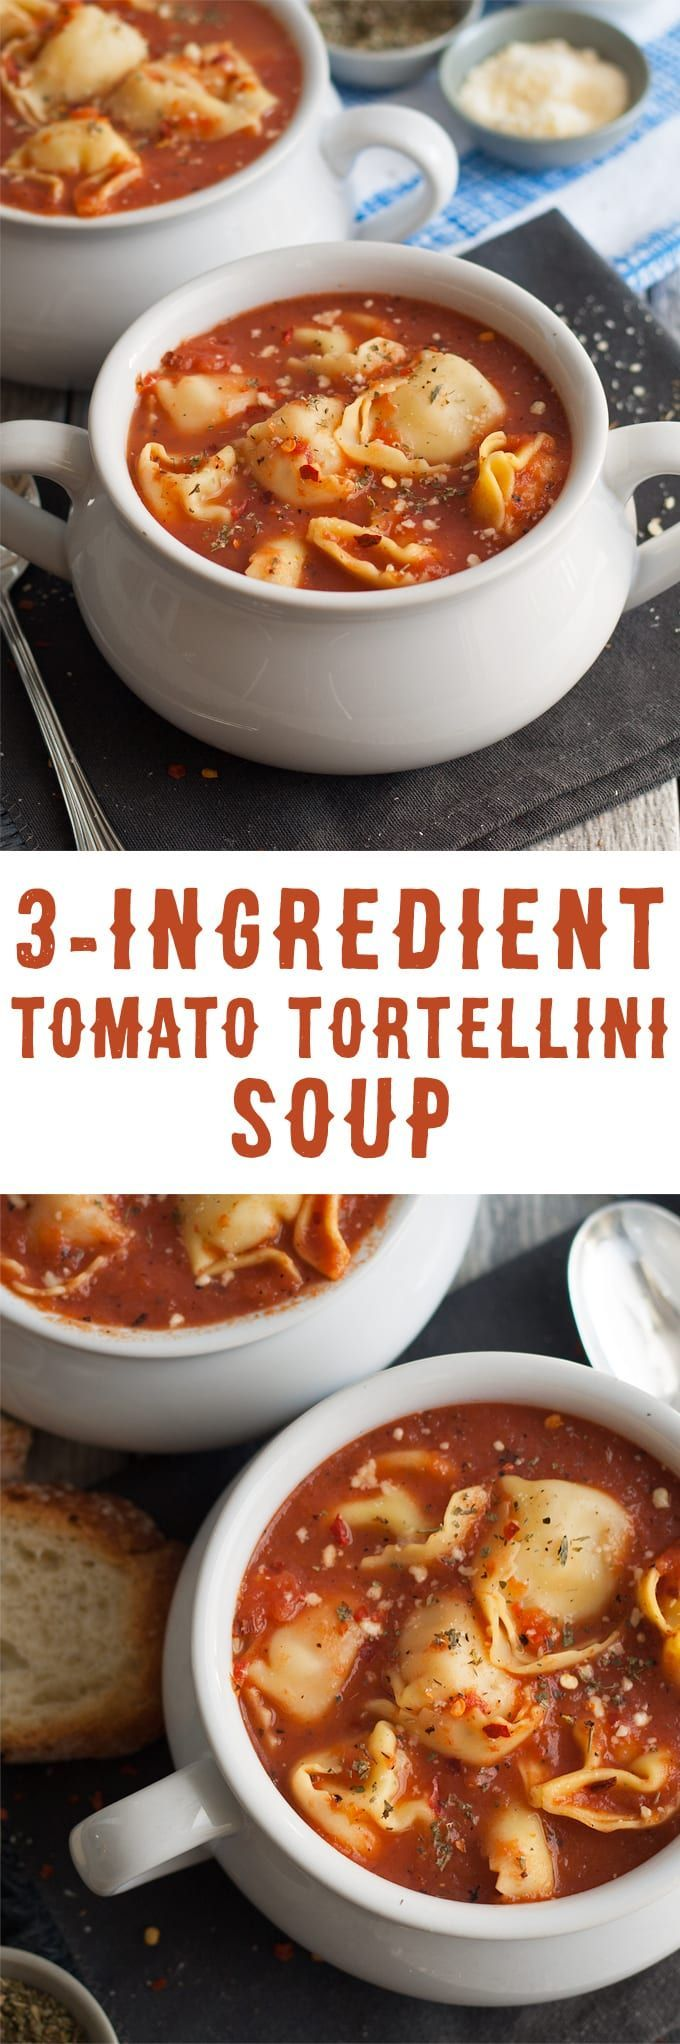 3 Ingredient Tomato Tortellini Soup - if you're short on time, make this soup! It only takes 15 minutes from start to finish and is full of flavor. Plus, 3 variations are included with easy additions for more soup deliciousness! | honeyandbirch.com (Easy Paleo Pasta)